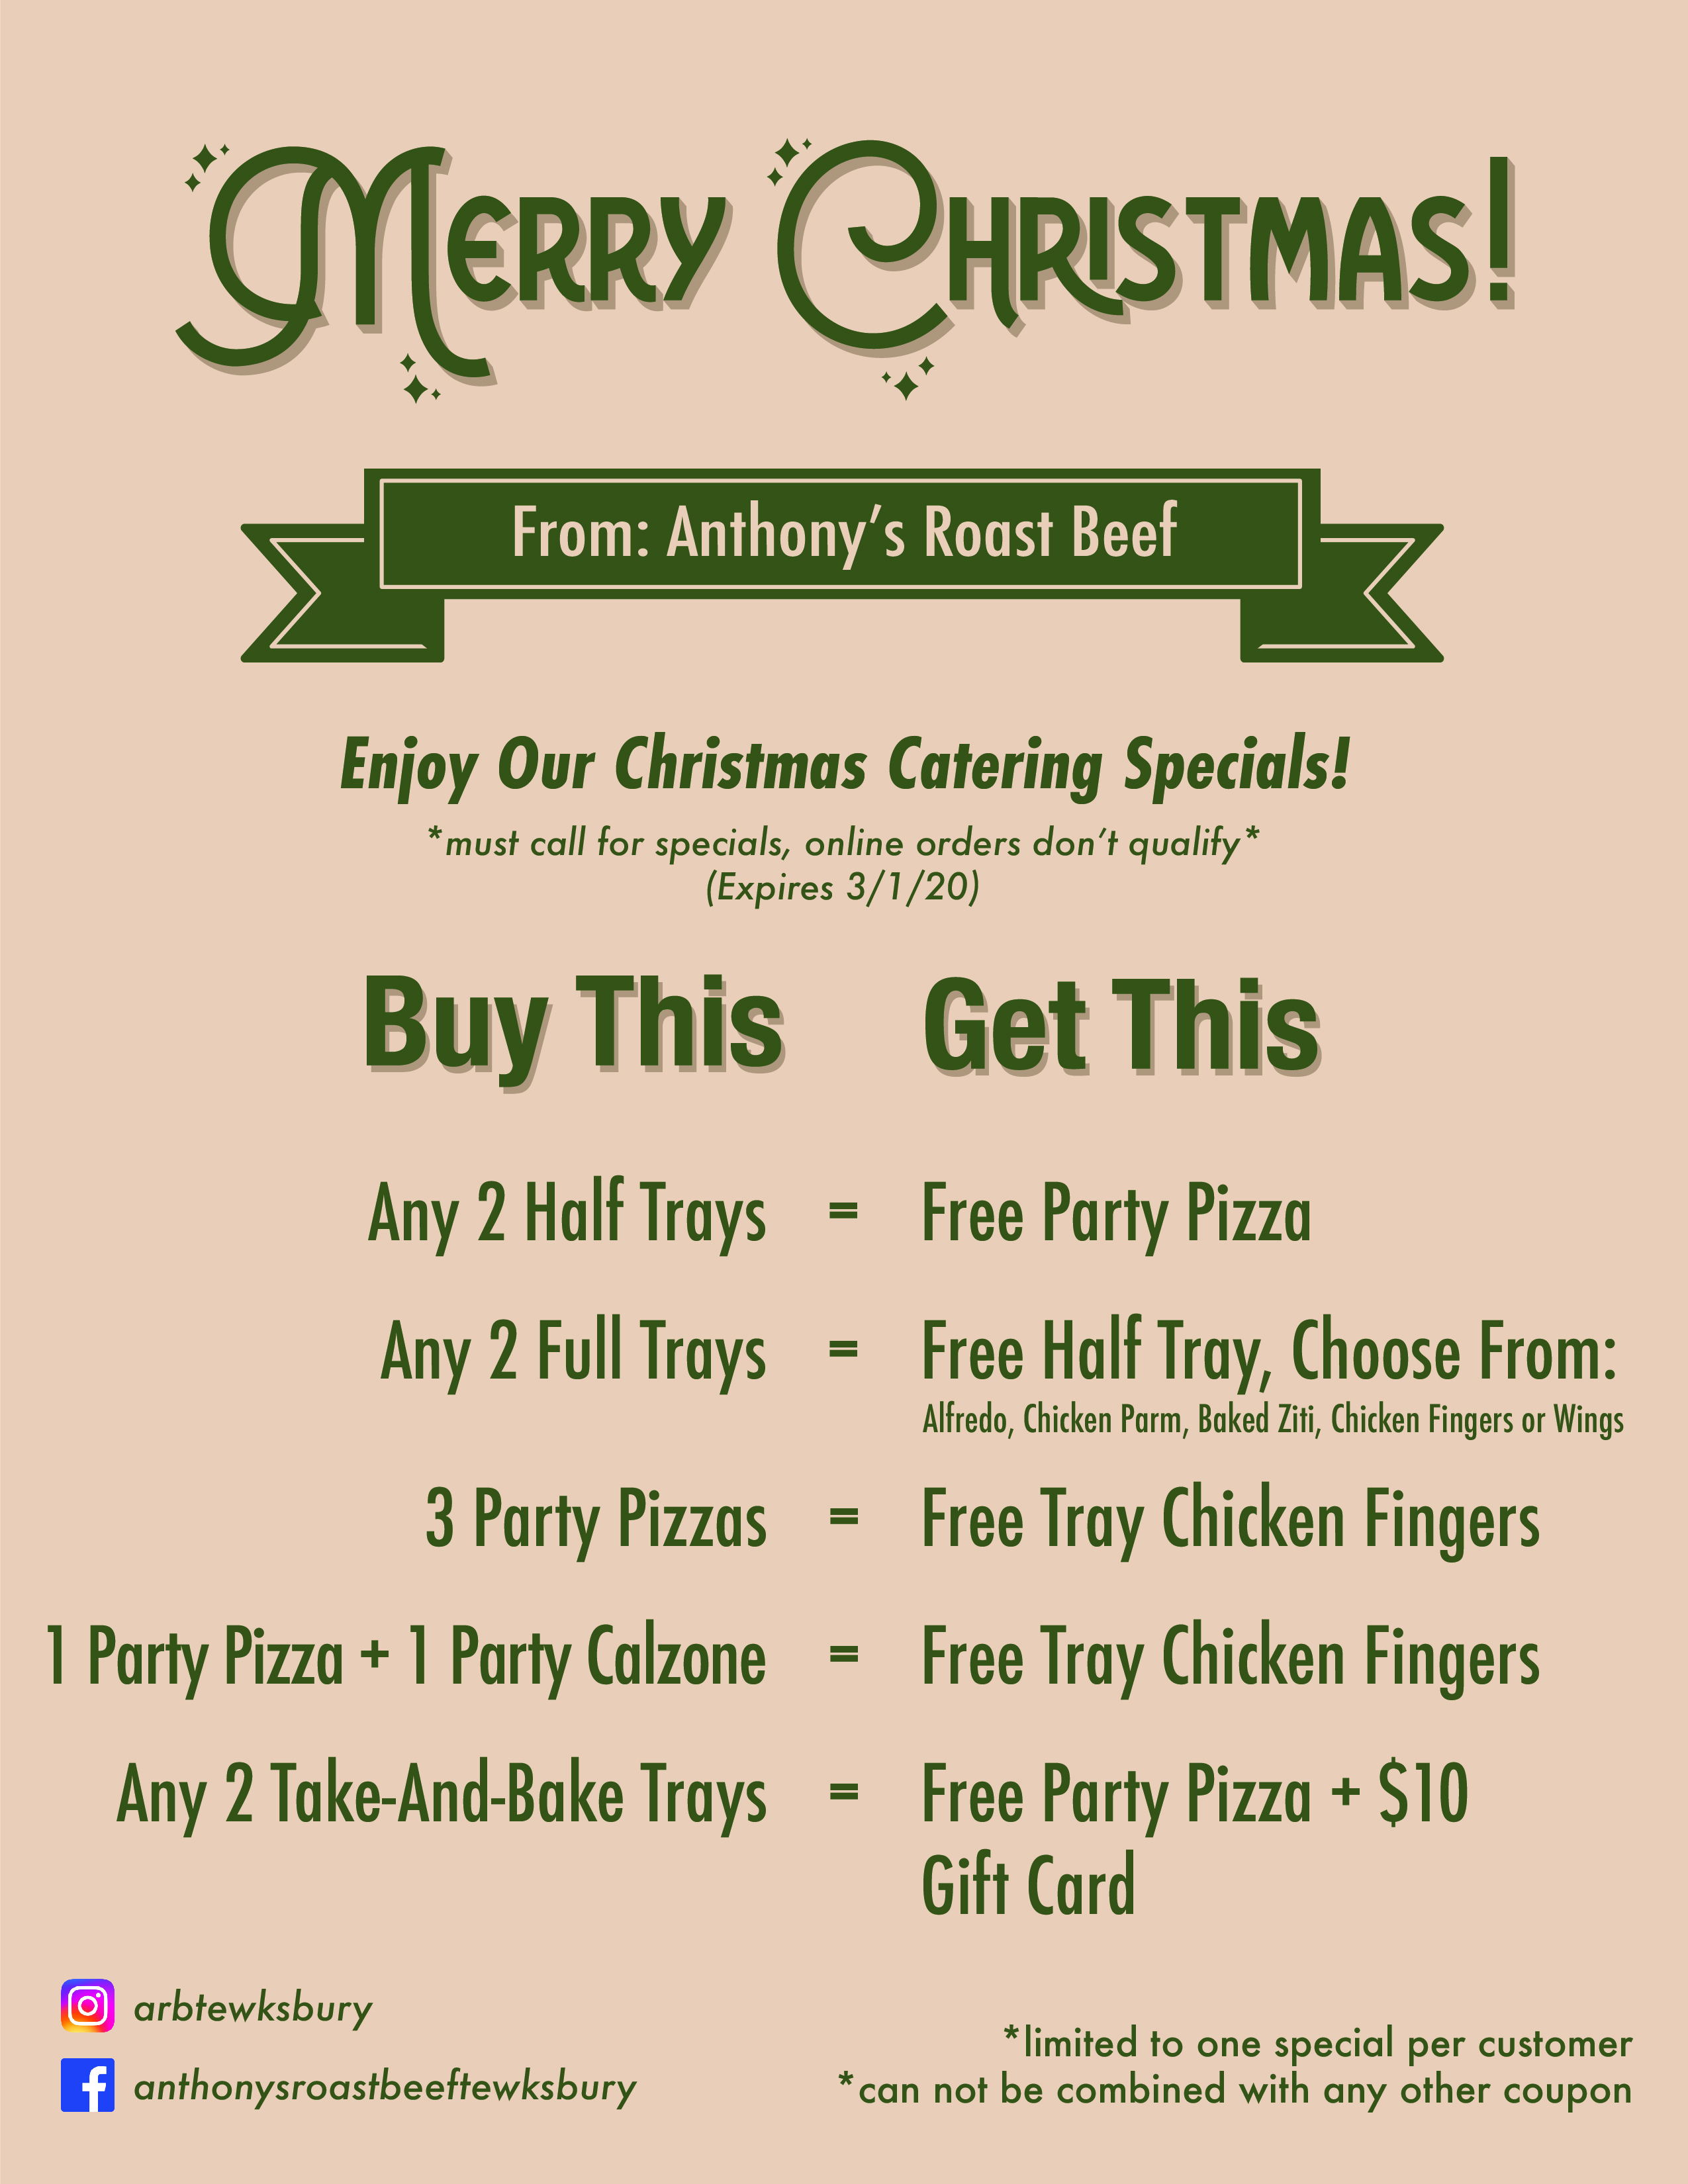 Merry Christmas from Anthony's Roast beef. Enjoy our Christmas Catering specials! *must call for specials, online orders don't qualify* (expires 3/1/20). Buy this: any 2 half trays = get this: free party pizza. Buy this: any 2 full trays = get this: free half tray, choose from: alfredo, chicken parm, baked ziti, chicken fingers or wings. Buy this 3 party pizzas= get this free tray chicken fingers. buy this: 1 party pizza and 1 party calzone= get this free tray of chicken fingers. Buy this: any 2 take and bake trays = get this free party pizza + $10 gift card. (limited to one special per customer. Can not be combined with any other coupon.